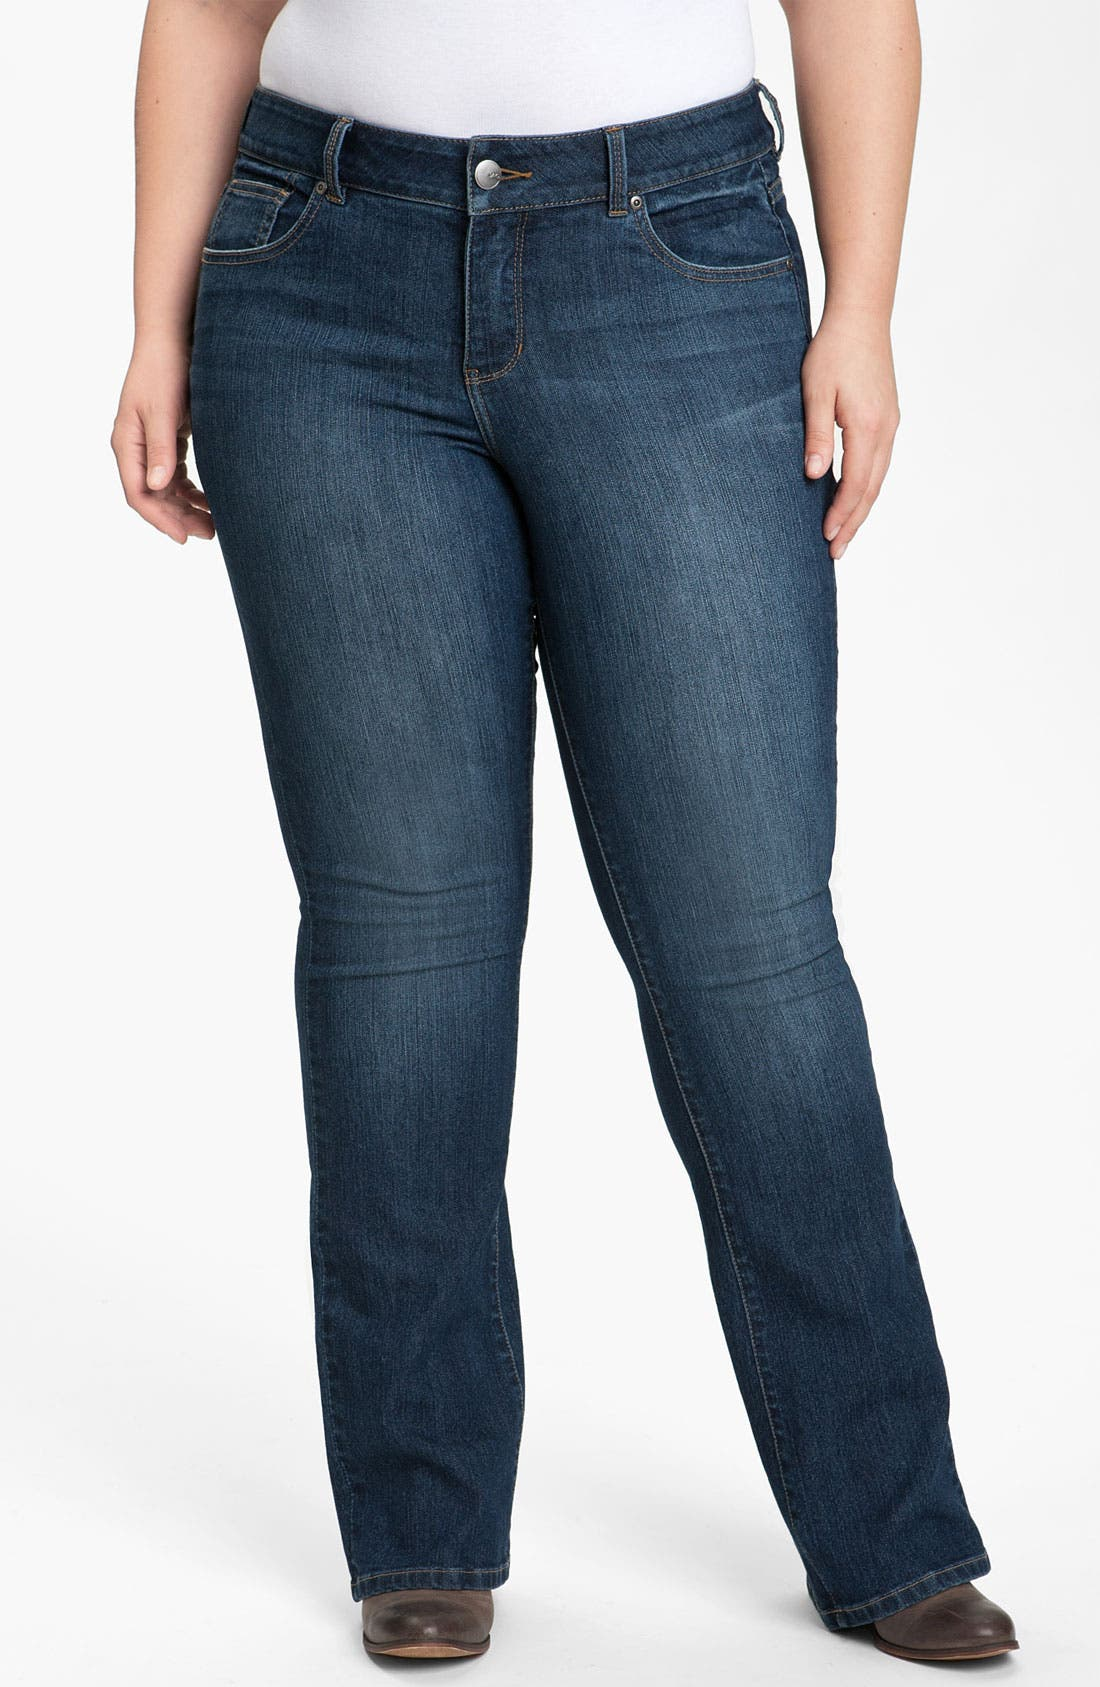 Alternate Image 1 Selected - Jag Jeans 'Lucy' Bootcut Jeans (Petite Plus) (Online Exclusive)